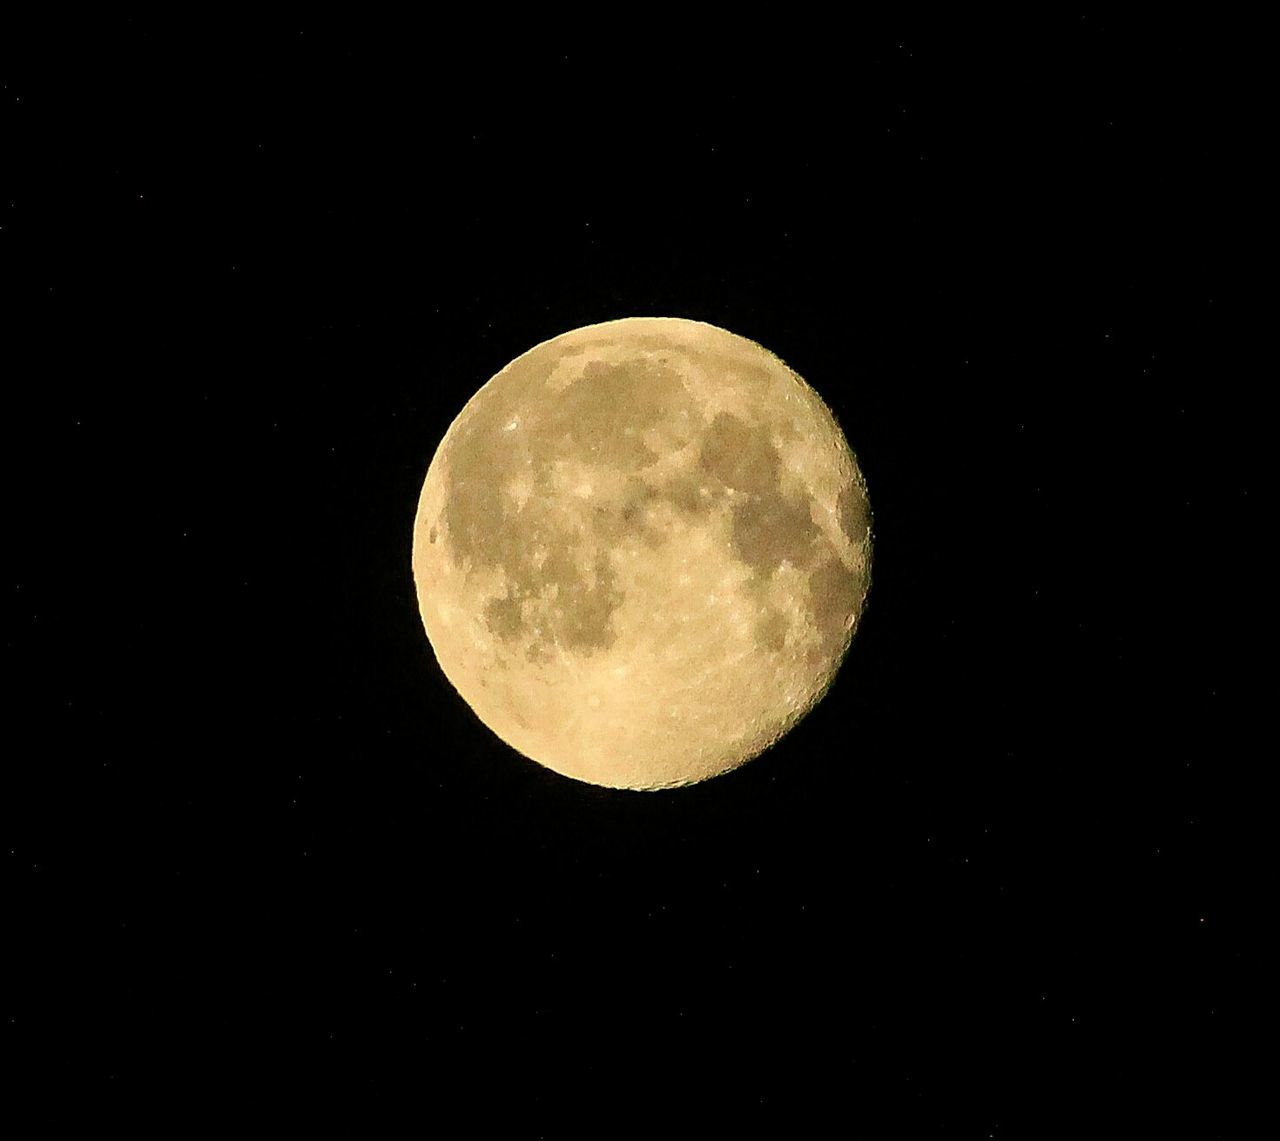 moon, night, astronomy, moon surface, beauty in nature, nature, planetary moon, circle, scenics, low angle view, tranquility, no people, outdoors, space exploration, clear sky, space, sky, close-up